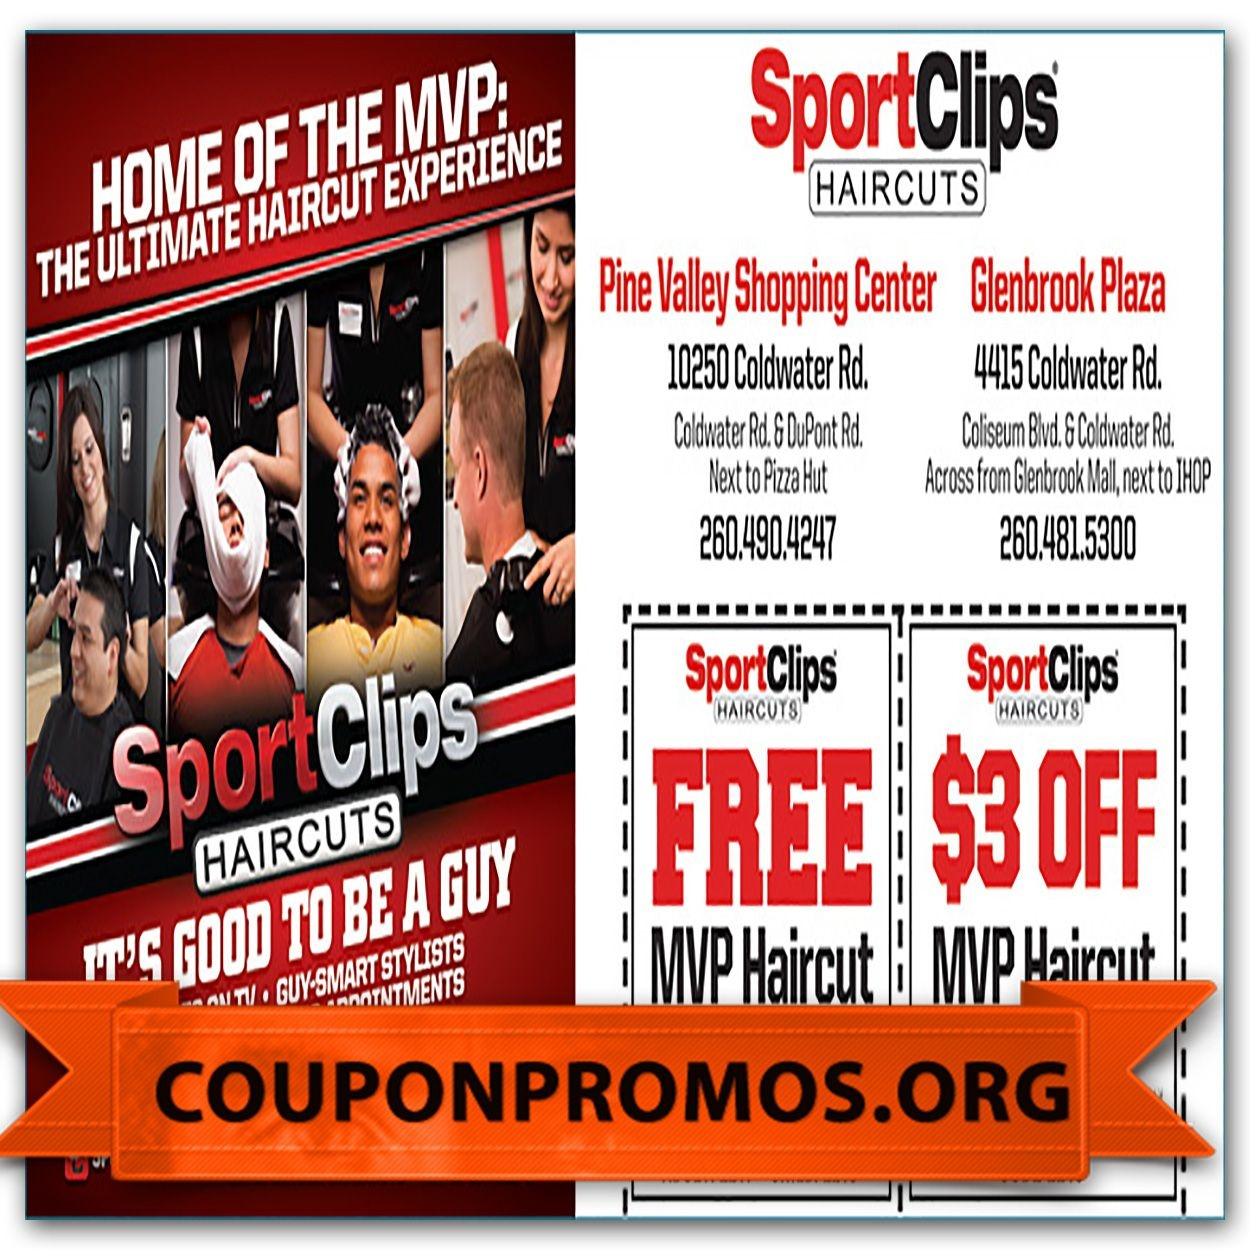 Sports Clips Coupon Printable For December   Sample Coupons For - Sports Clips Free Haircut Printable Coupon